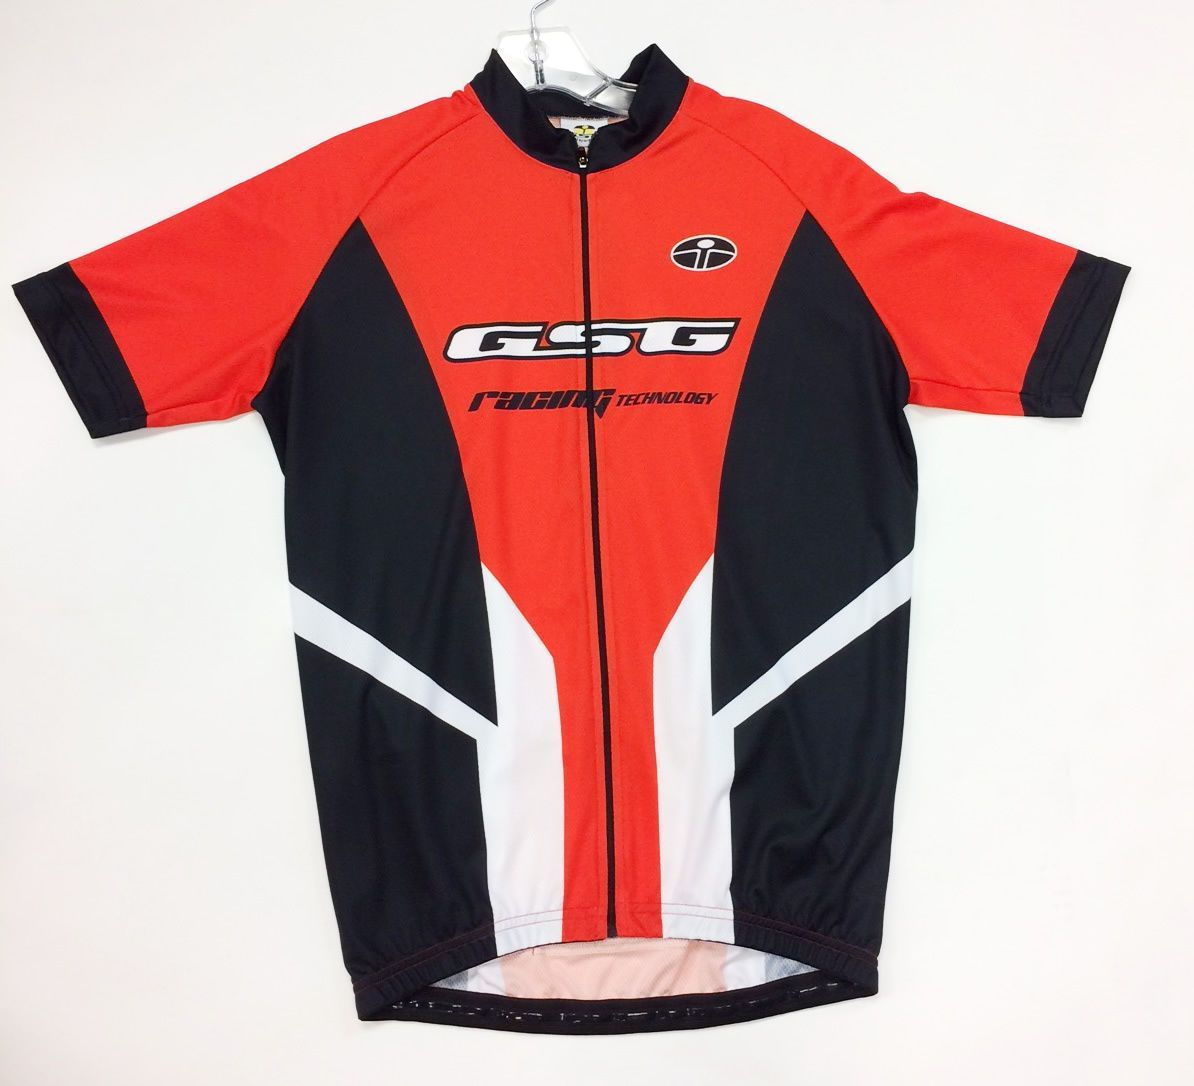 Made in Italy by GSG TEAM AG2R Thunder Windproof Cycling Jacket